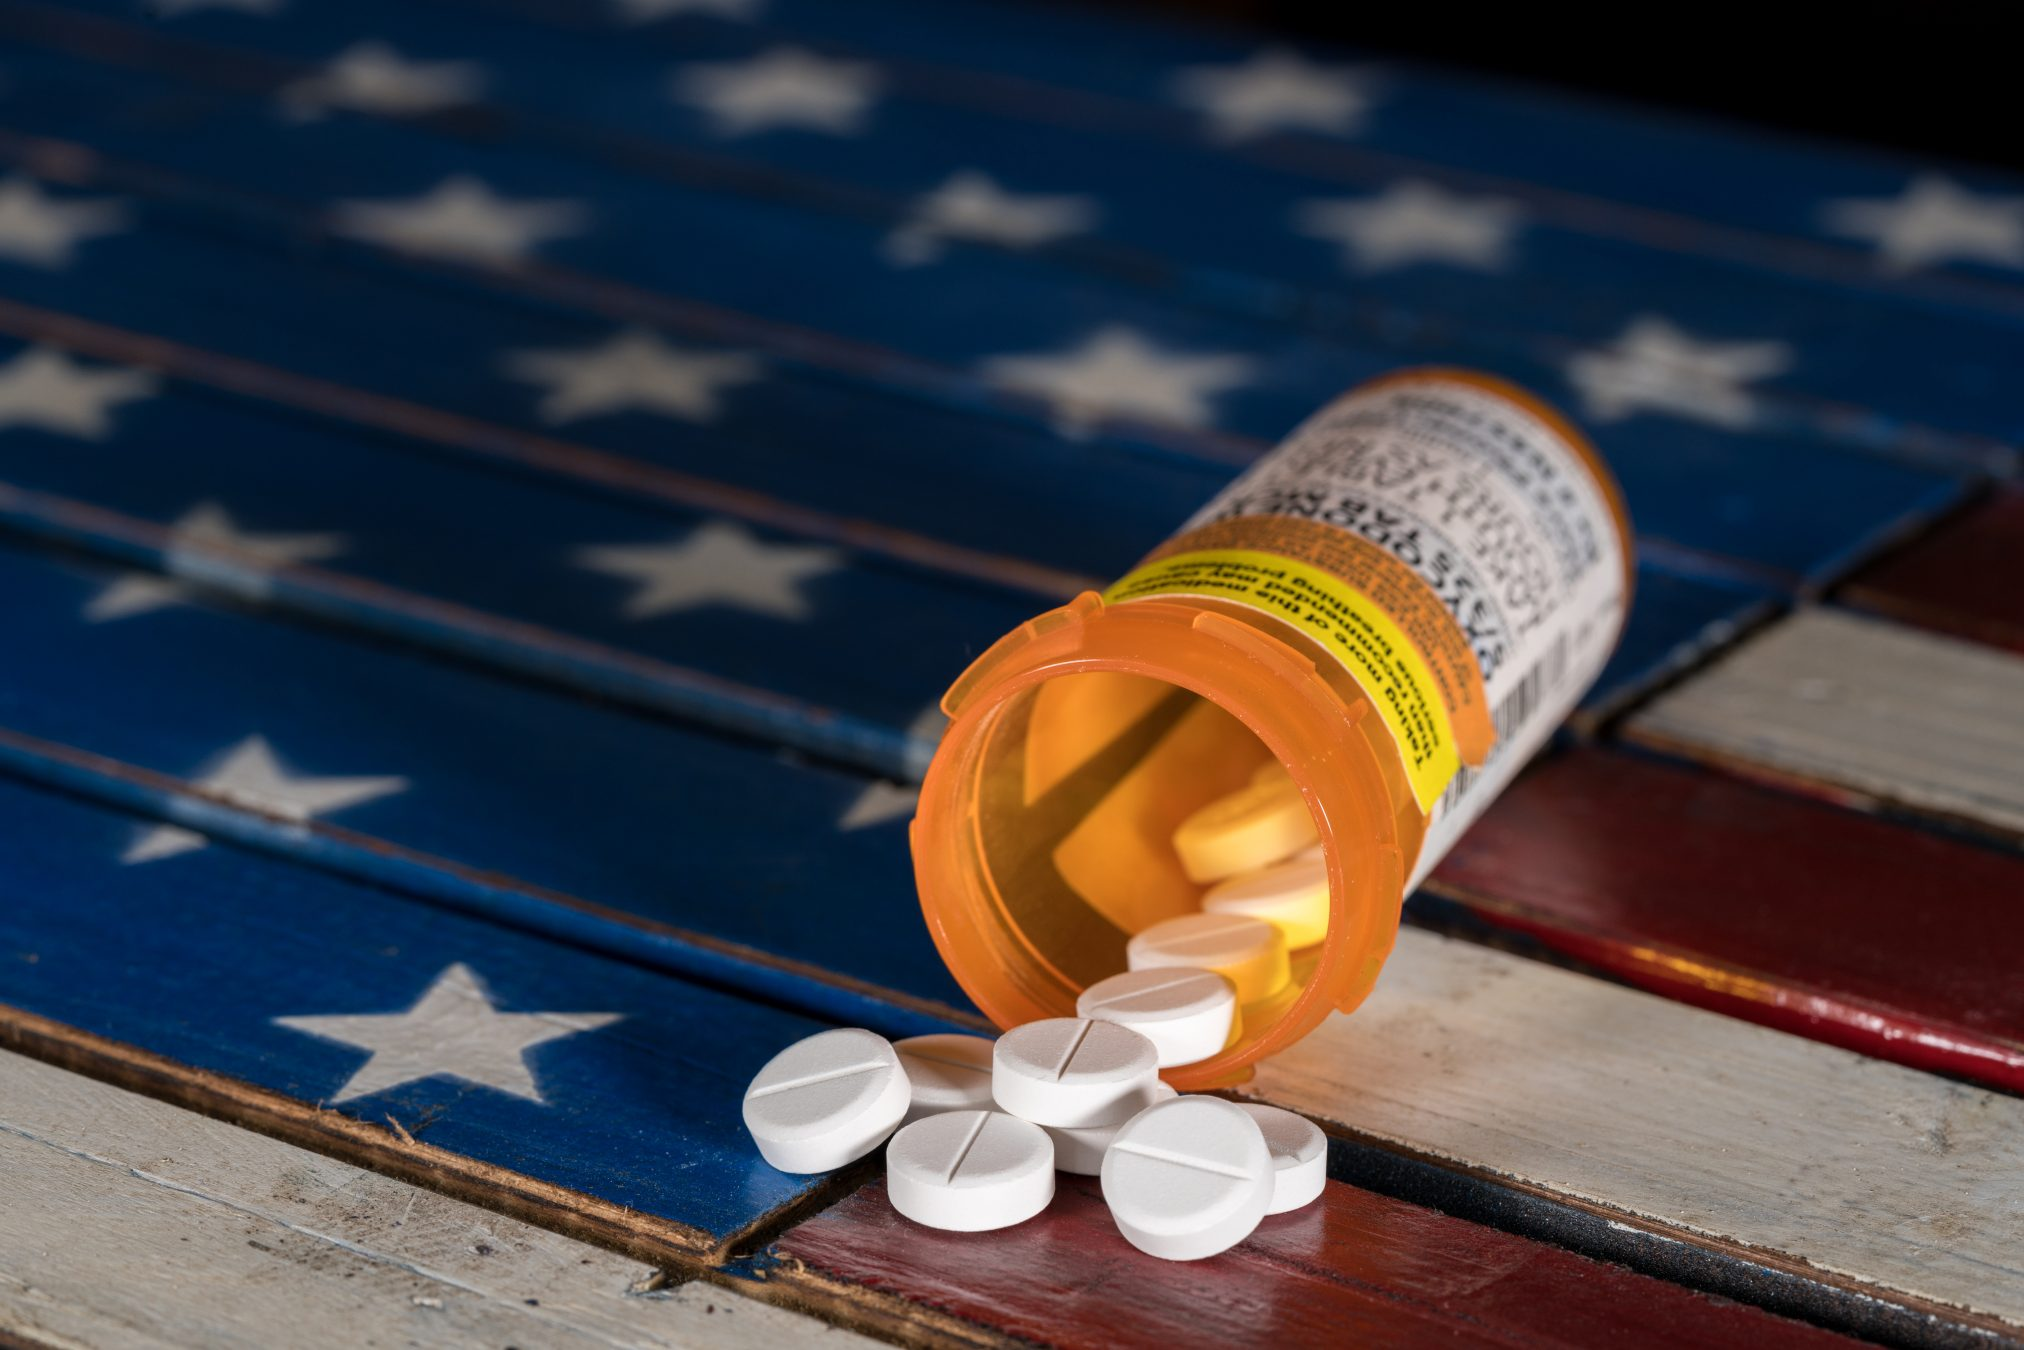 oxycodone pills and us flag